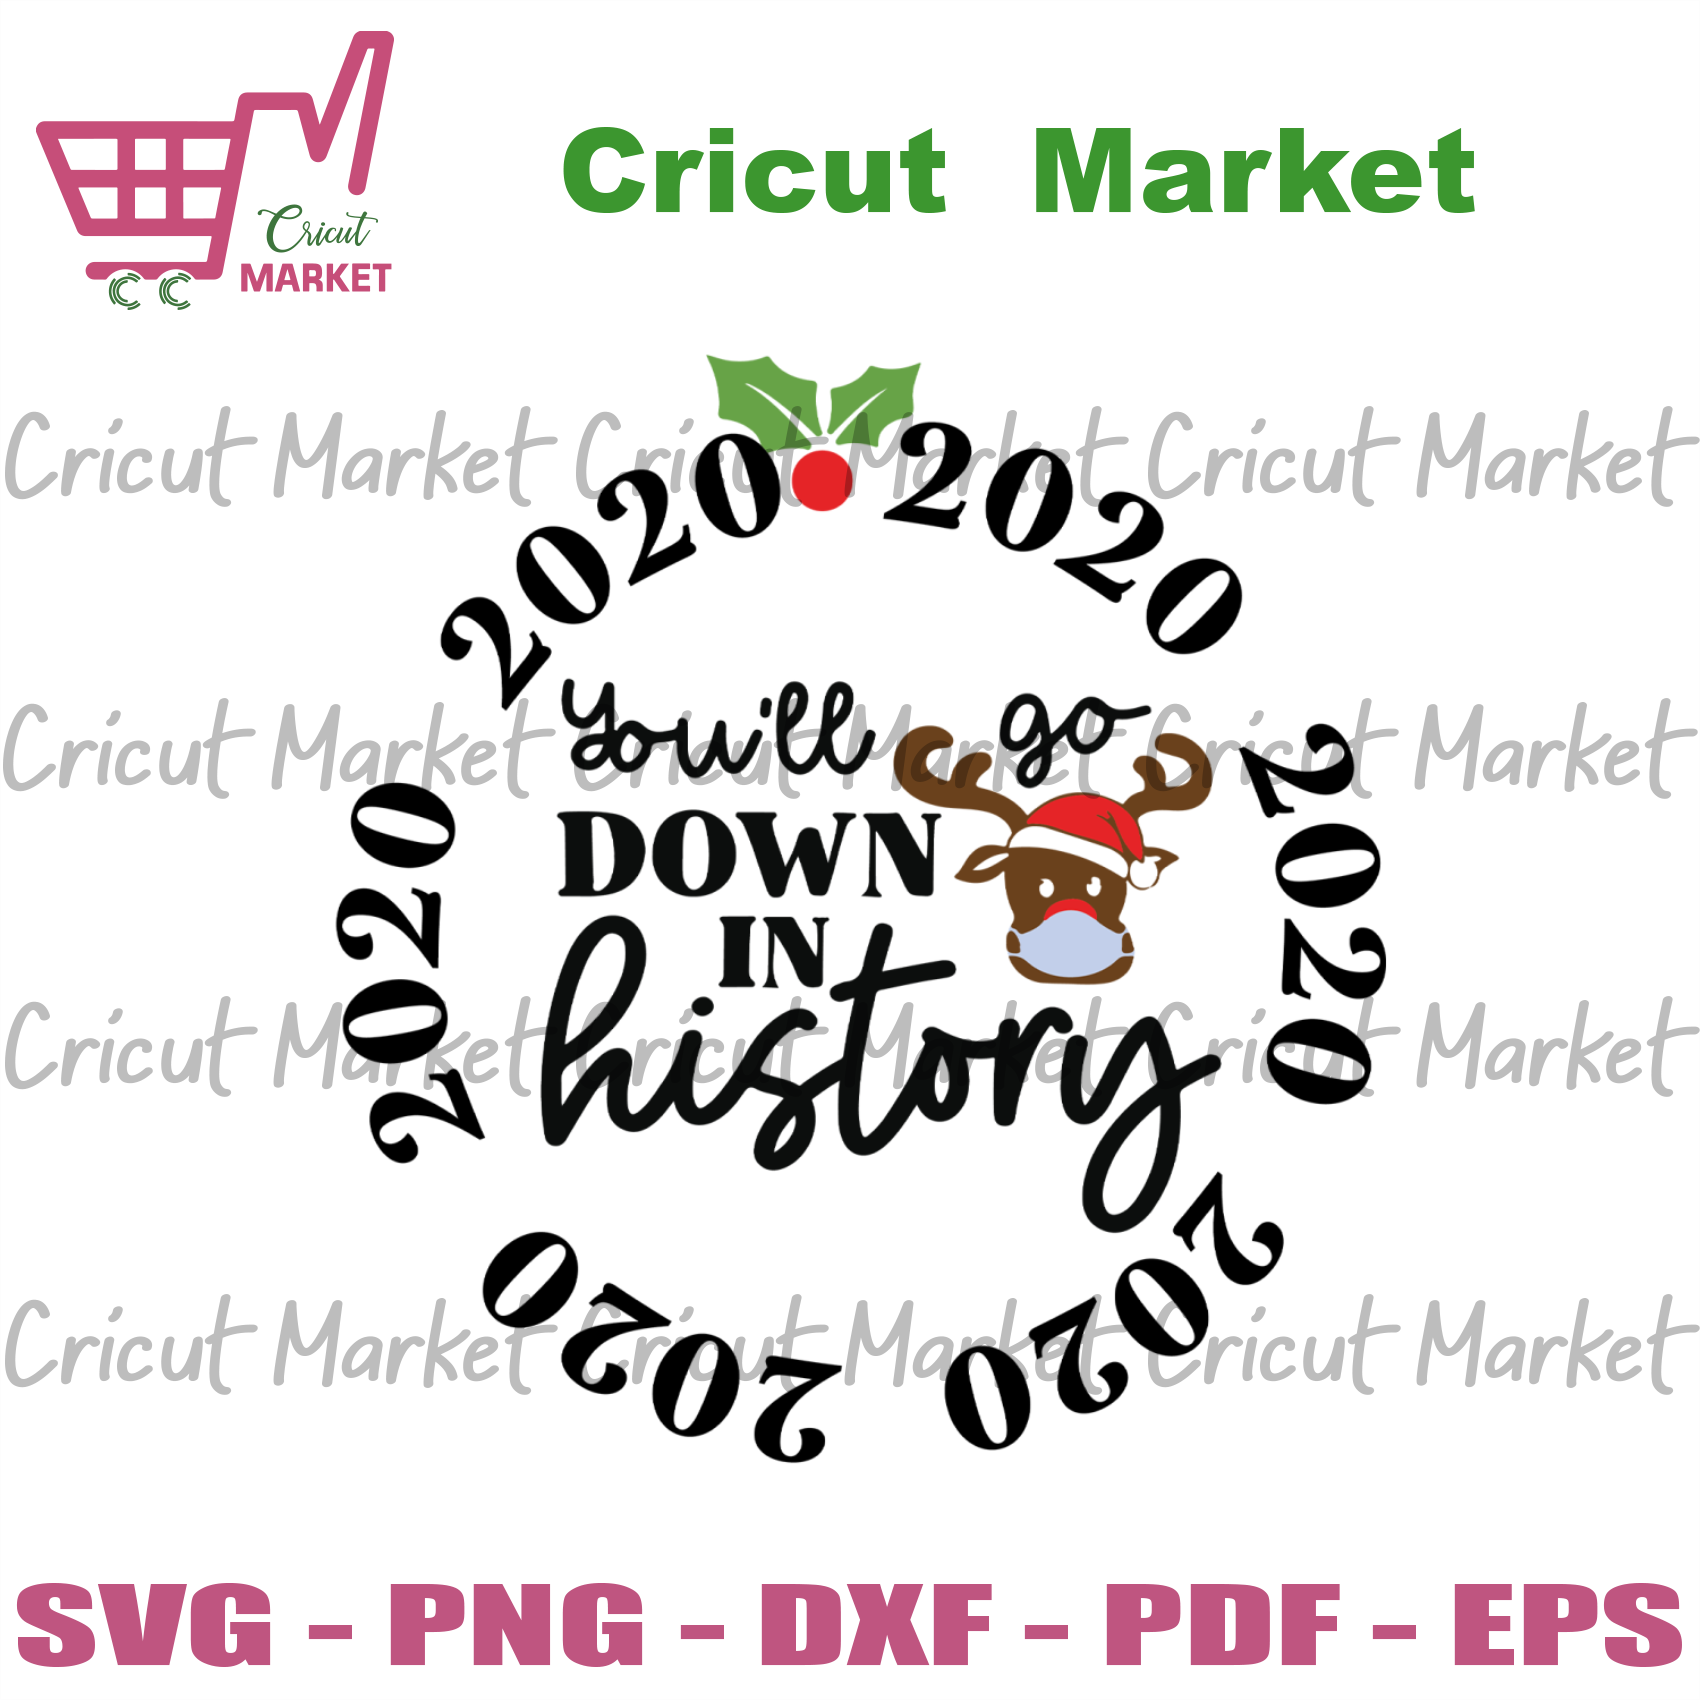 You Will Go Down In History 2020, Christmas Svg, Reindeer Svg, Christmas Reindeer Svg, Quarantine Svg, Mask Svg, 2020 Mask Svg, Christmas Gifts, Merry Christmas, Christmas Holiday, Christmas